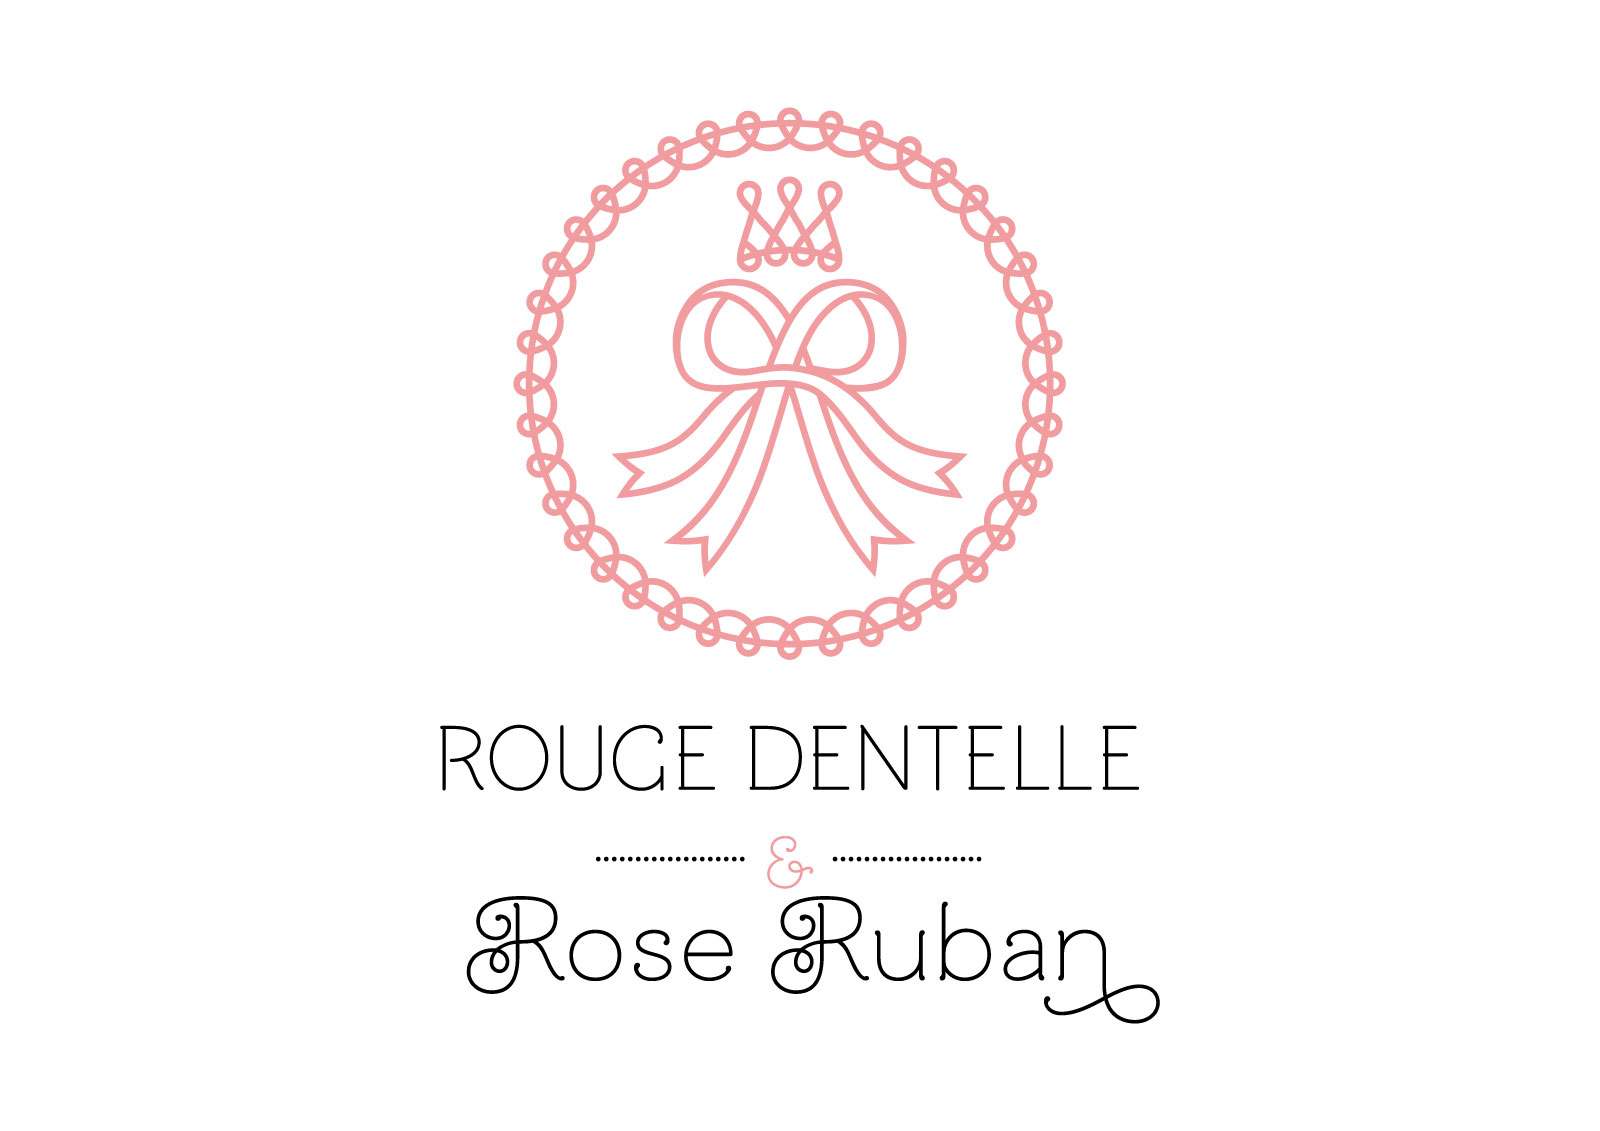 Rouge Dentelle & Rose Ruban vertical logo